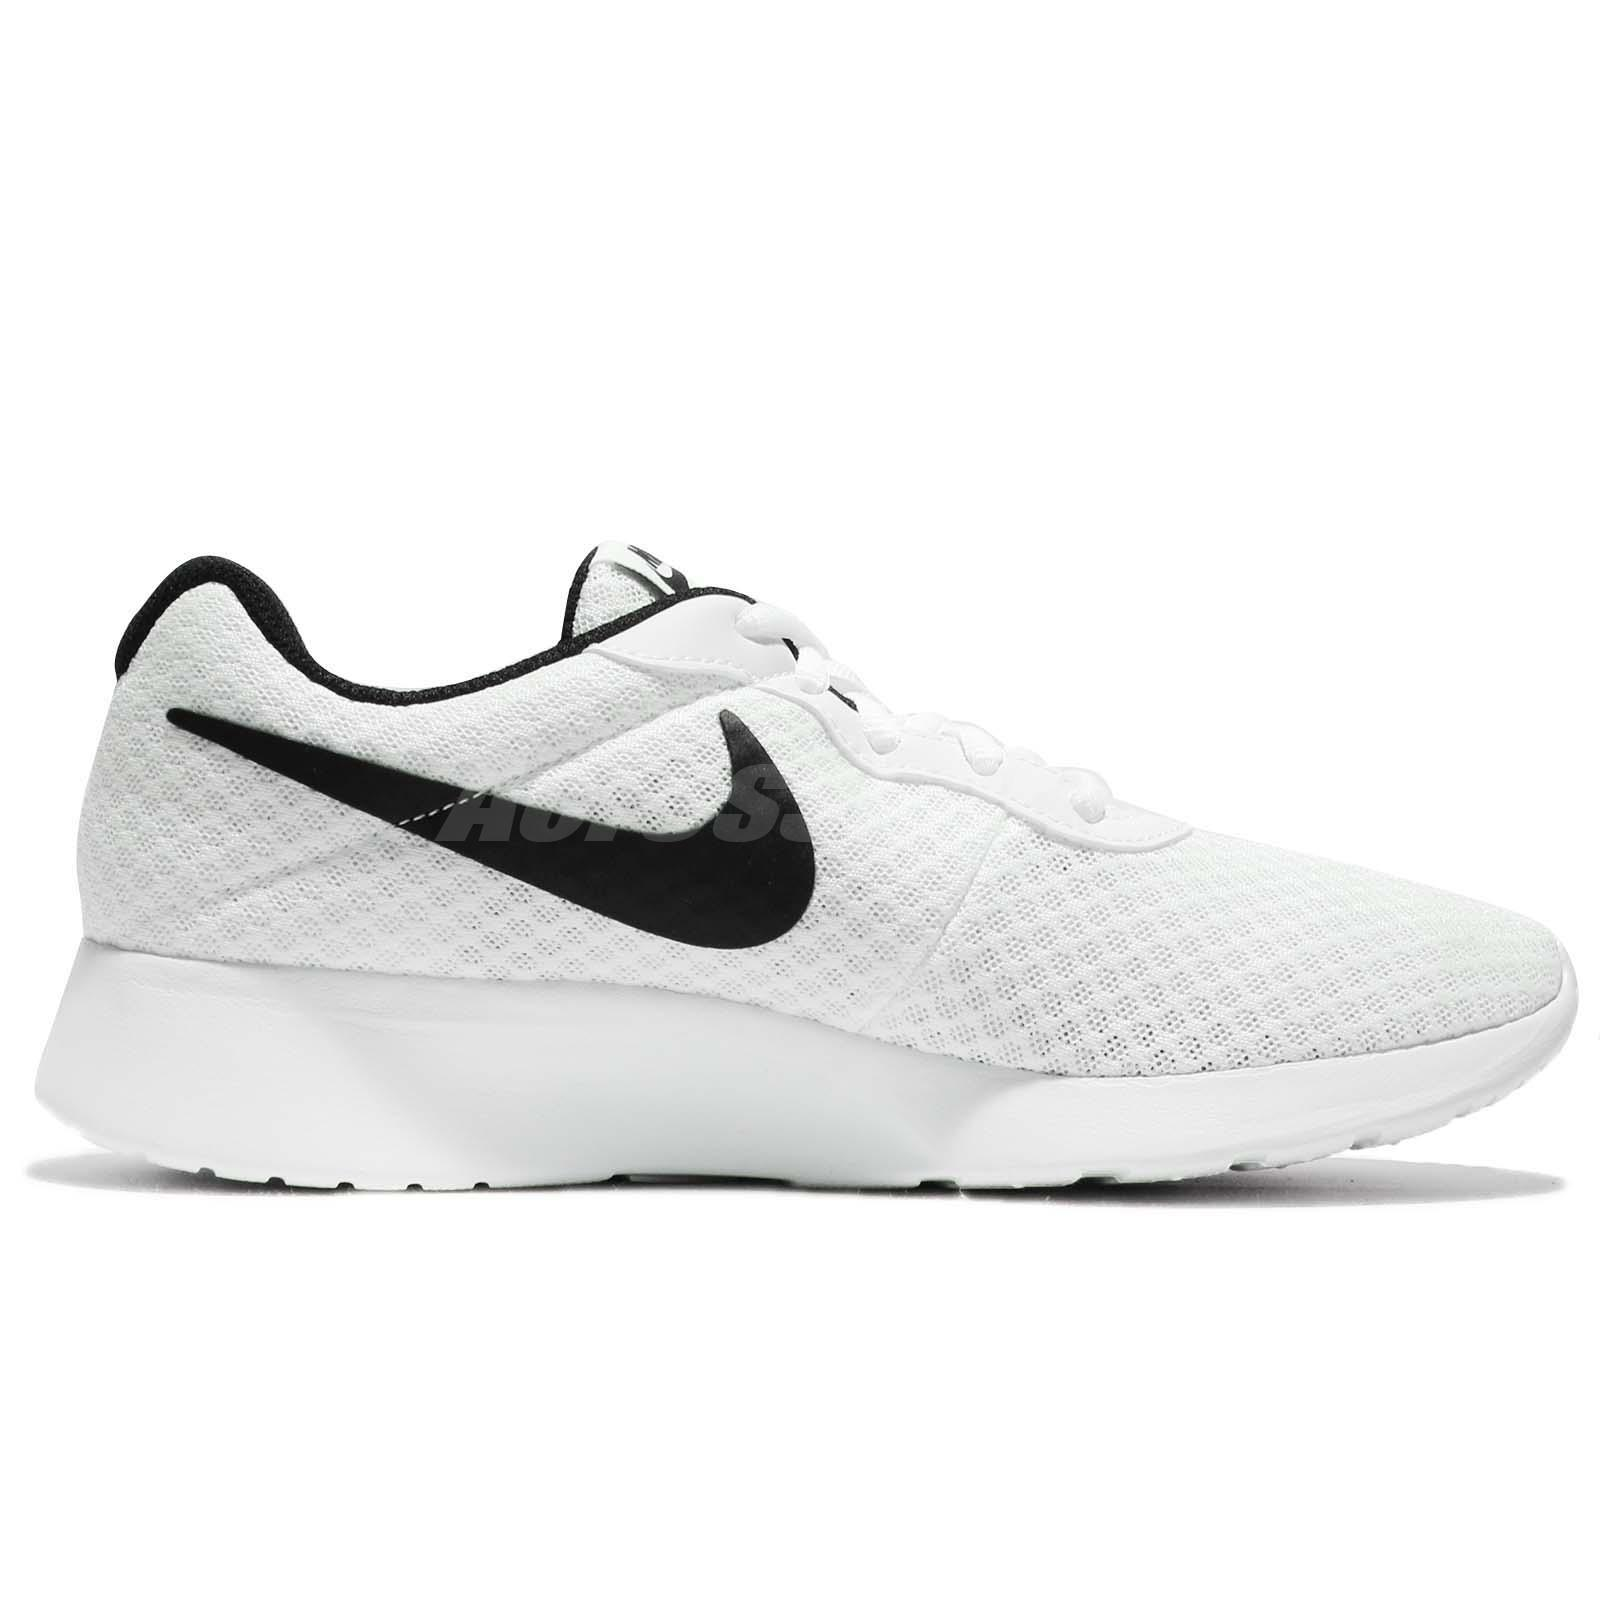 nike tanjun white with black